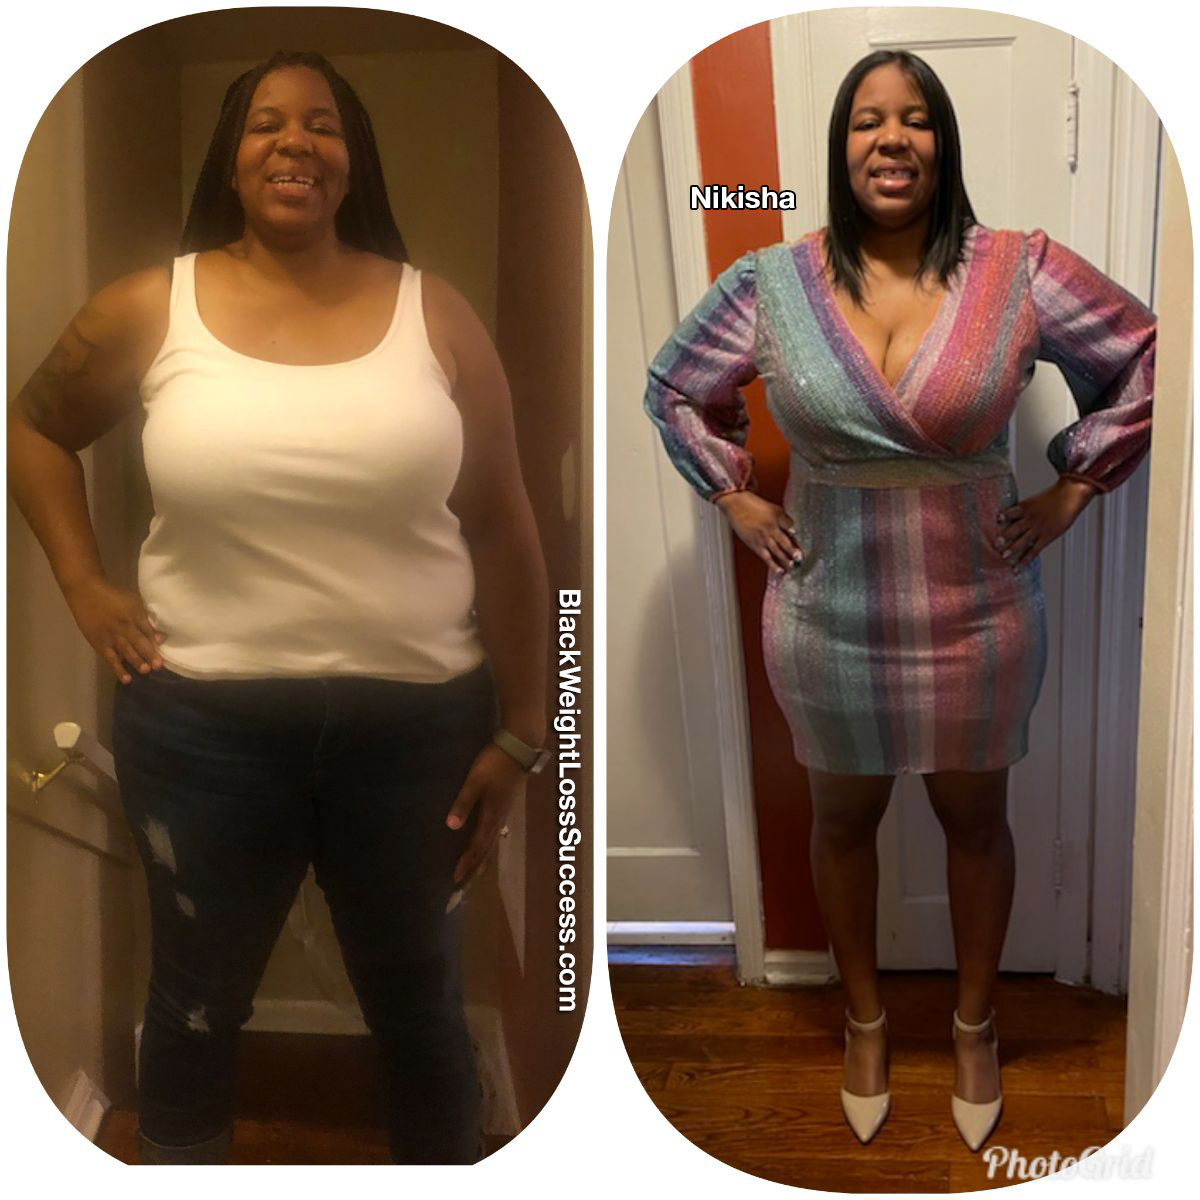 Nikisha before and after weight loss